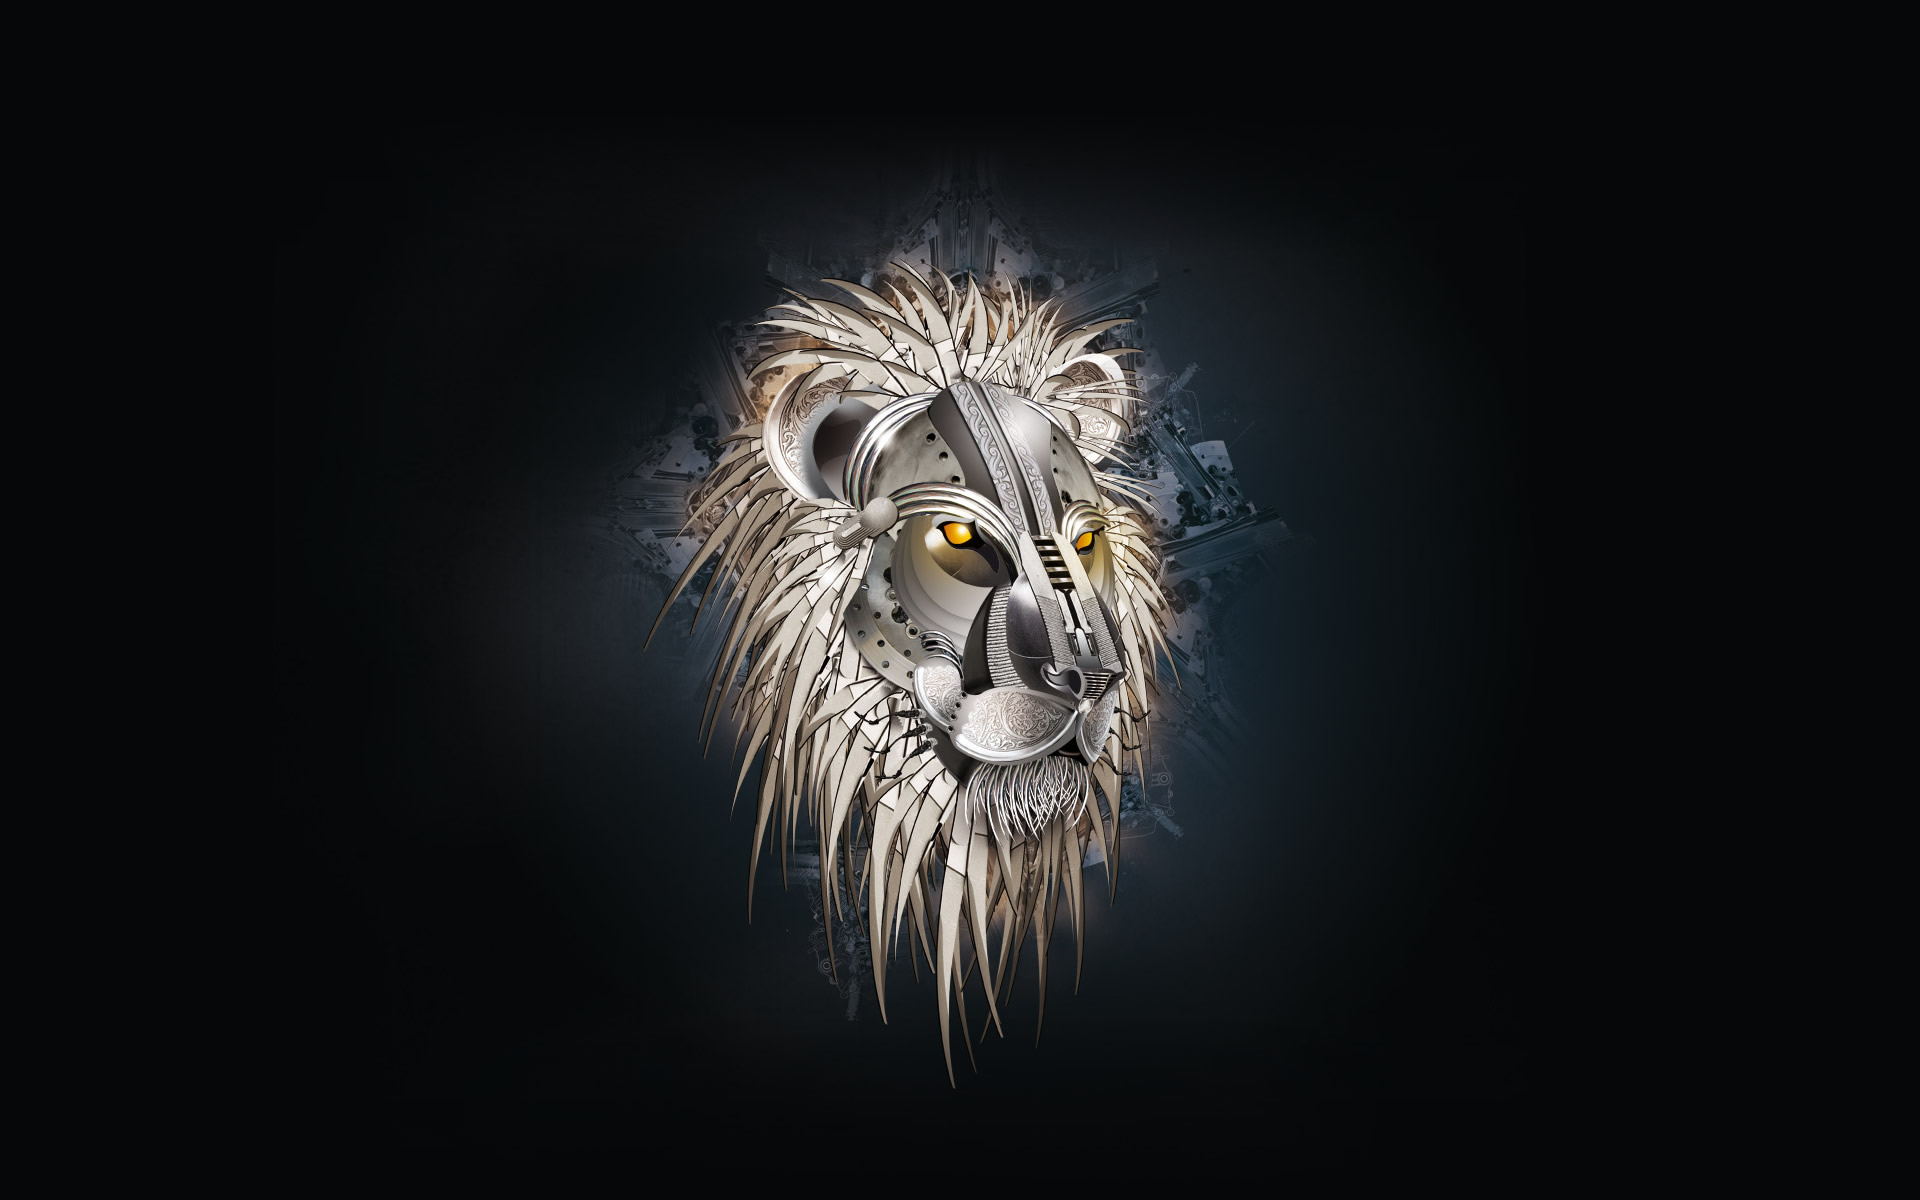 Steel lion against a dark background, are quite good wallpapers are also included in my collection